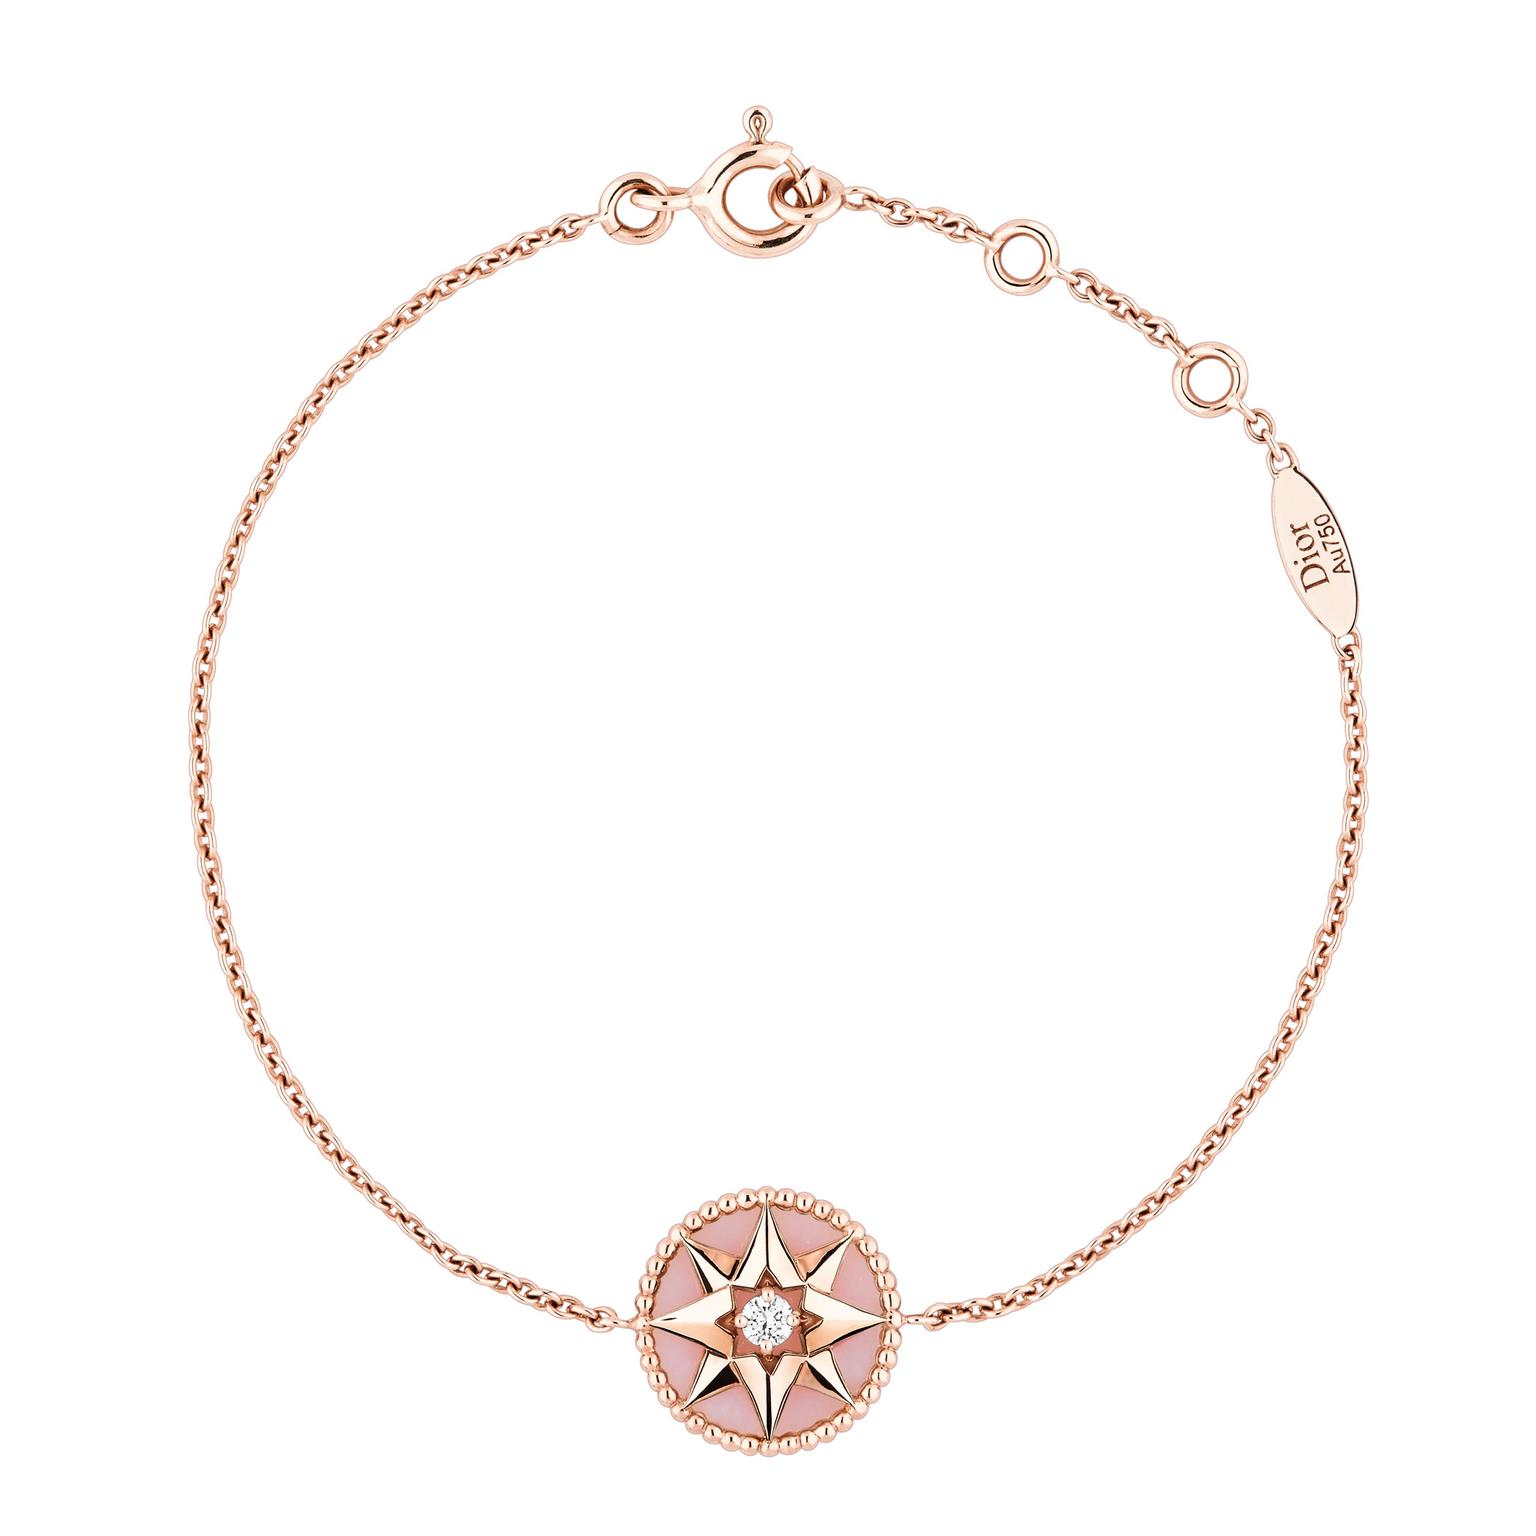 Pearl Jewellery Necklace >> Charmed life: the new Rose des Vents collection of Dior jewellery | The Jewellery Editor